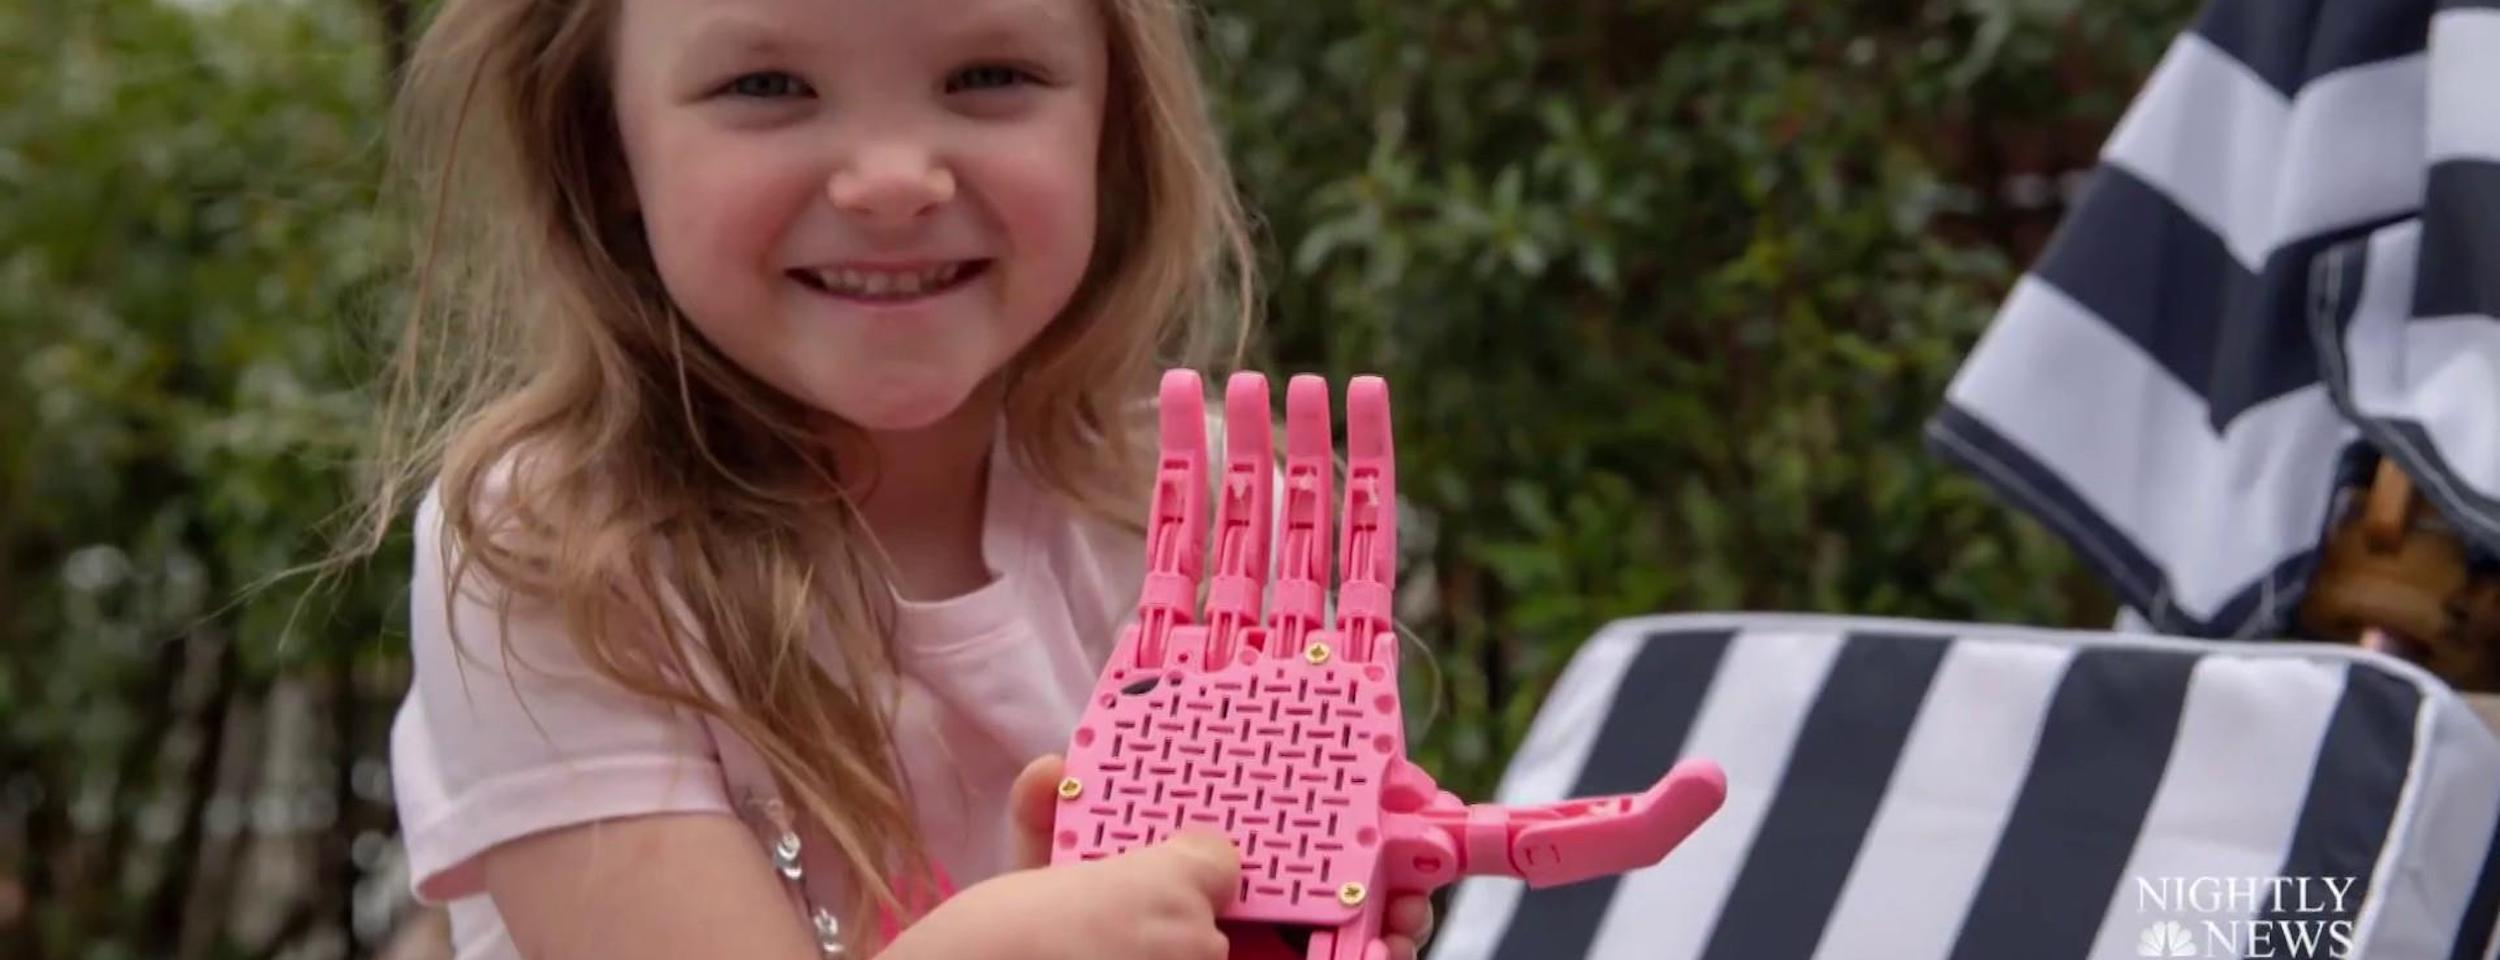 Little girl shows off pink prosthetic hand